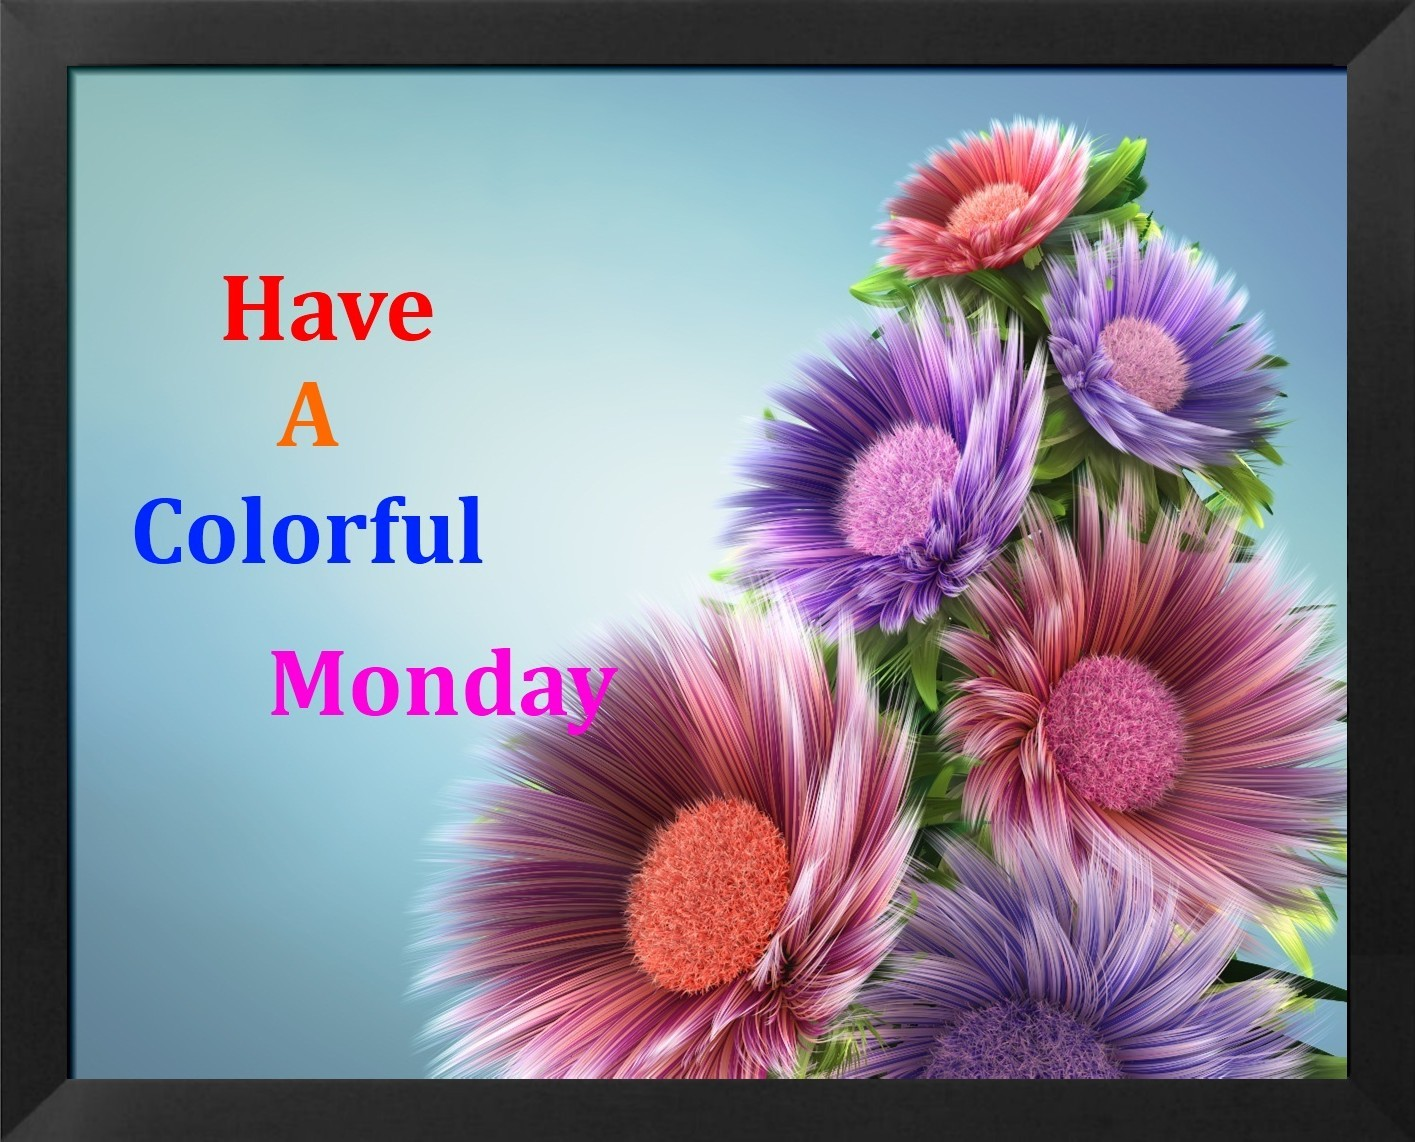 Good Morning Monday Images Have a colorful monday